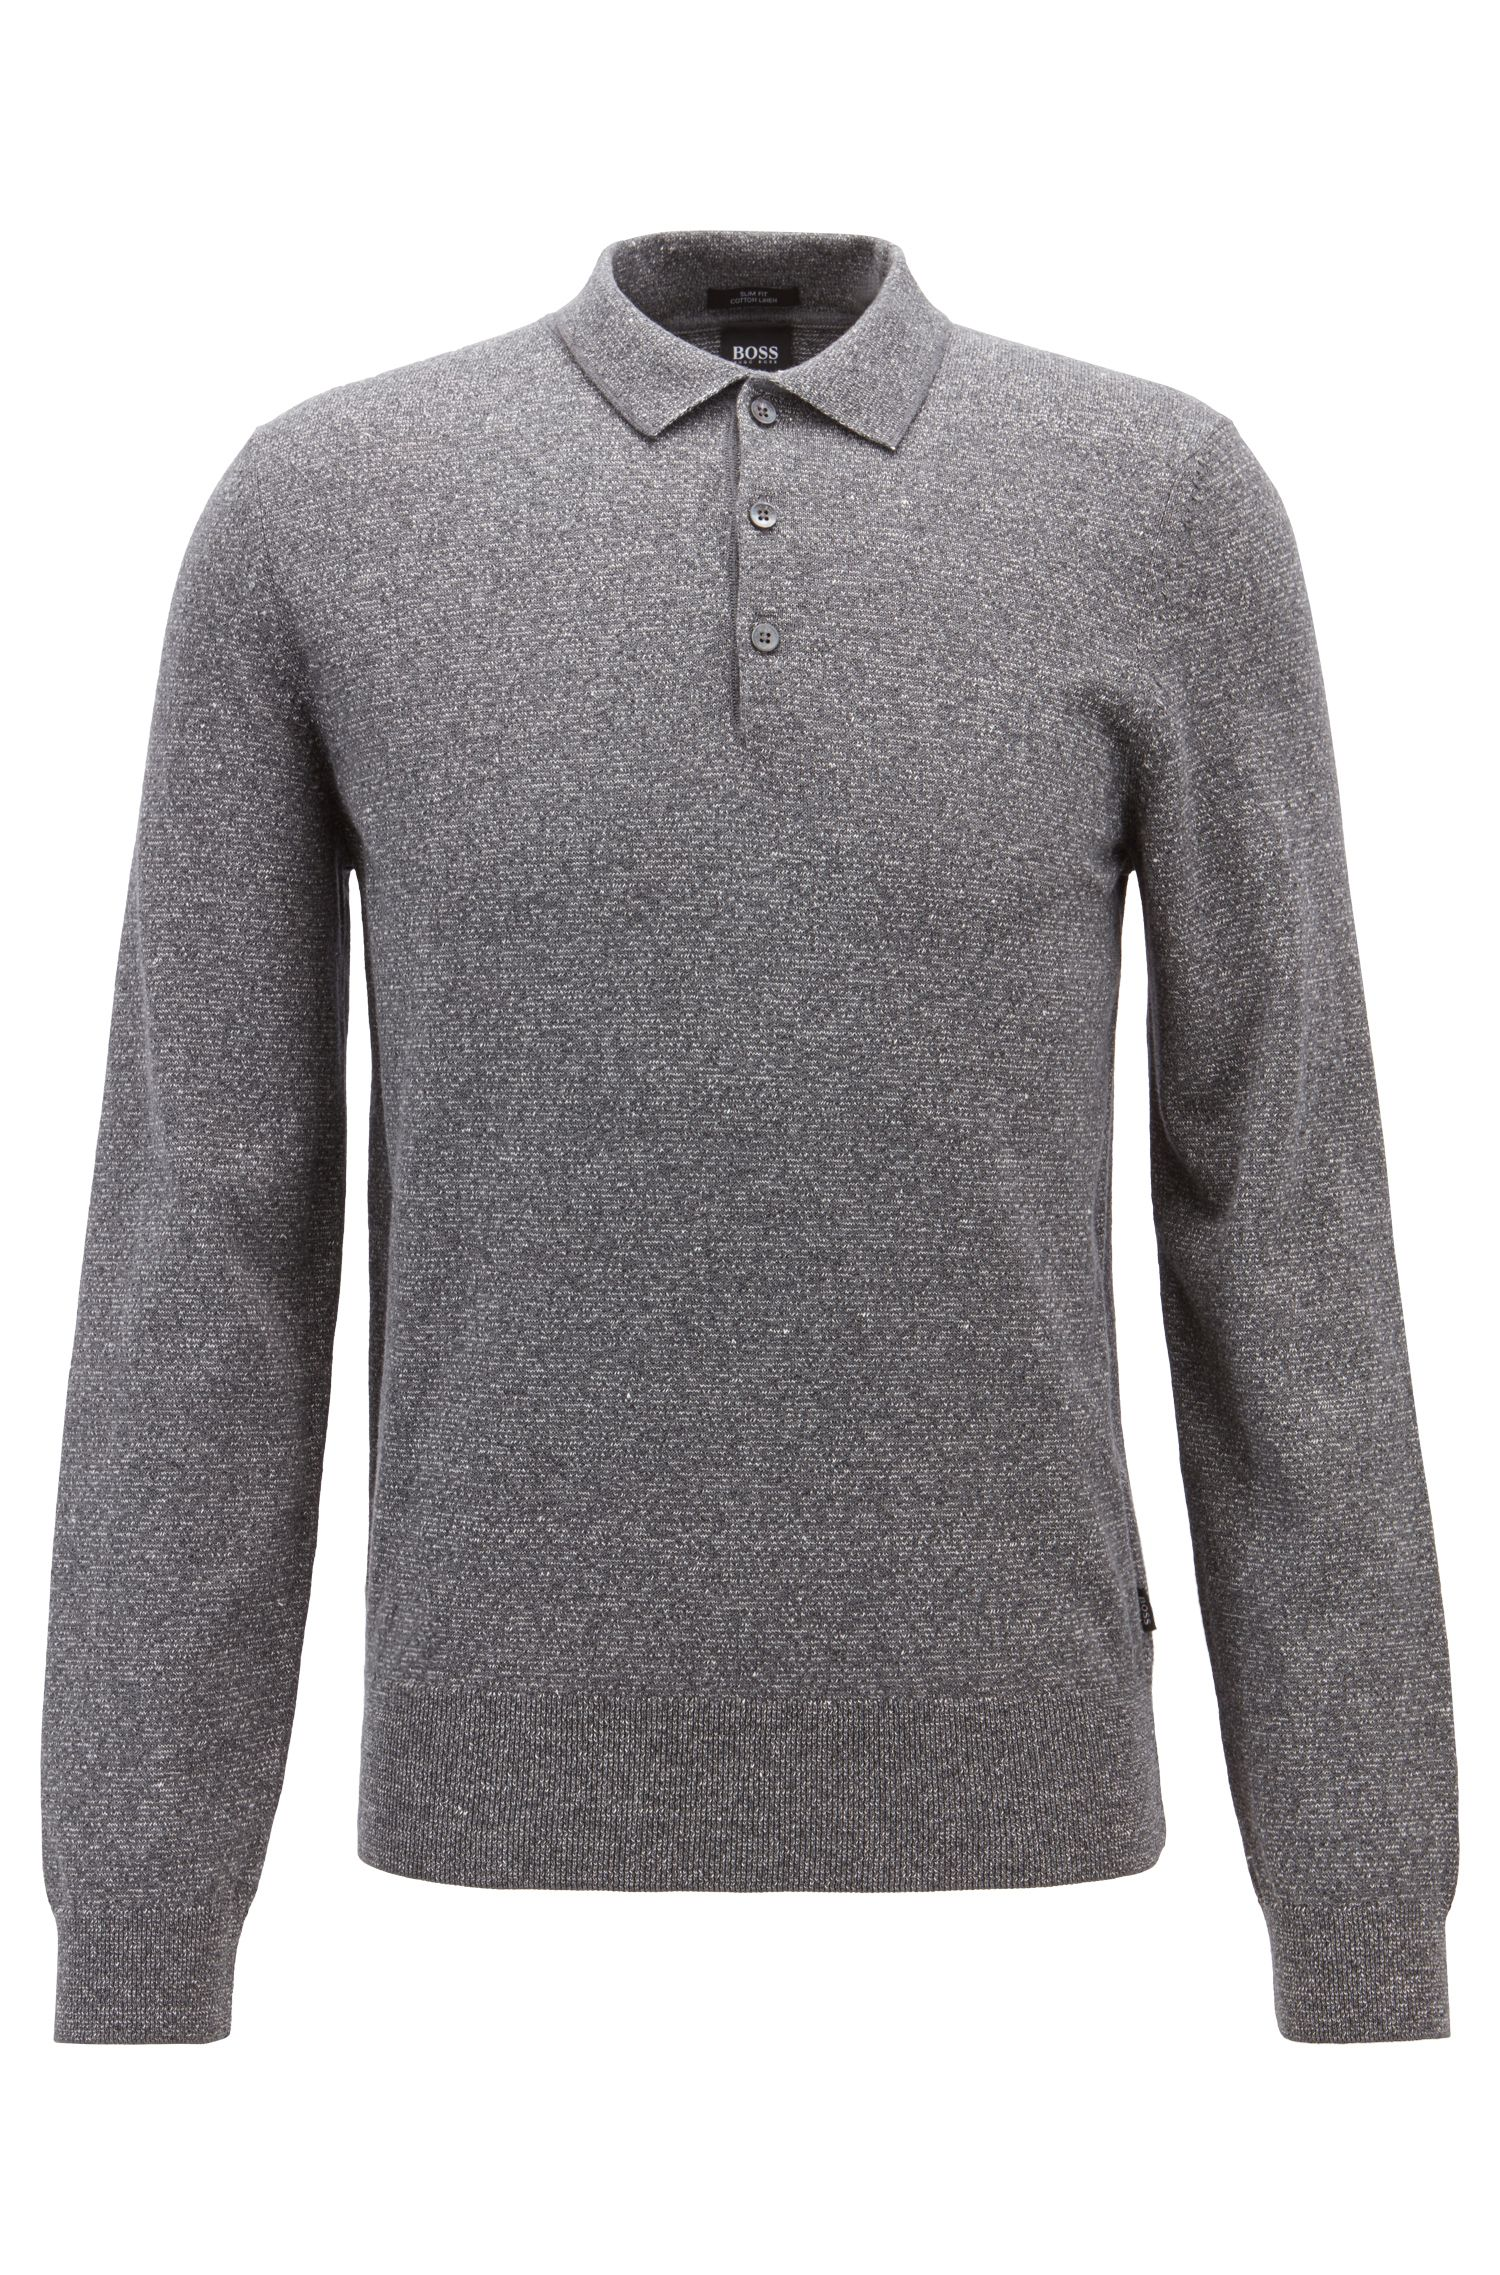 Slim-fit knitted sweater in a cotton-linen blend, Grey